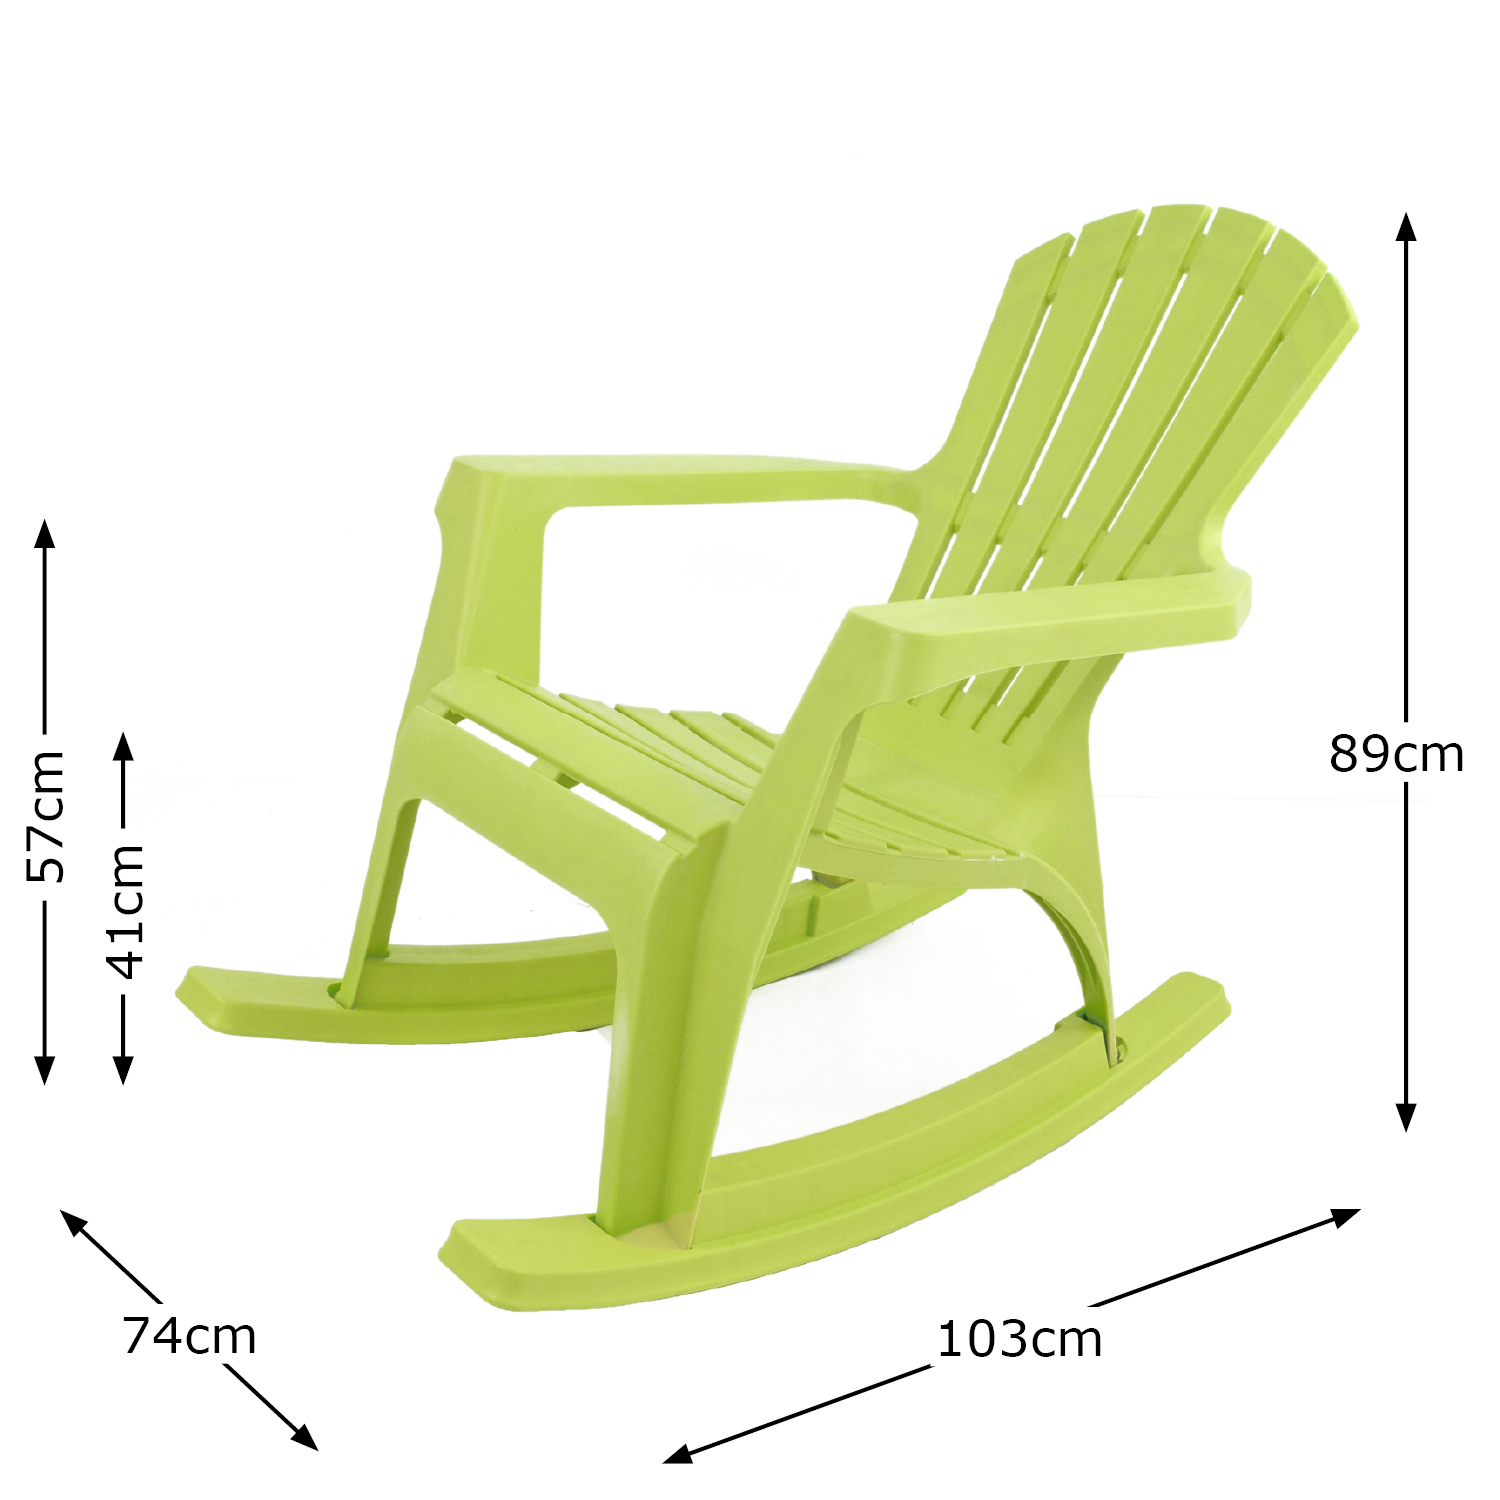 ANDRIA ROCKING CHAIR LIME DIMENSION MS1